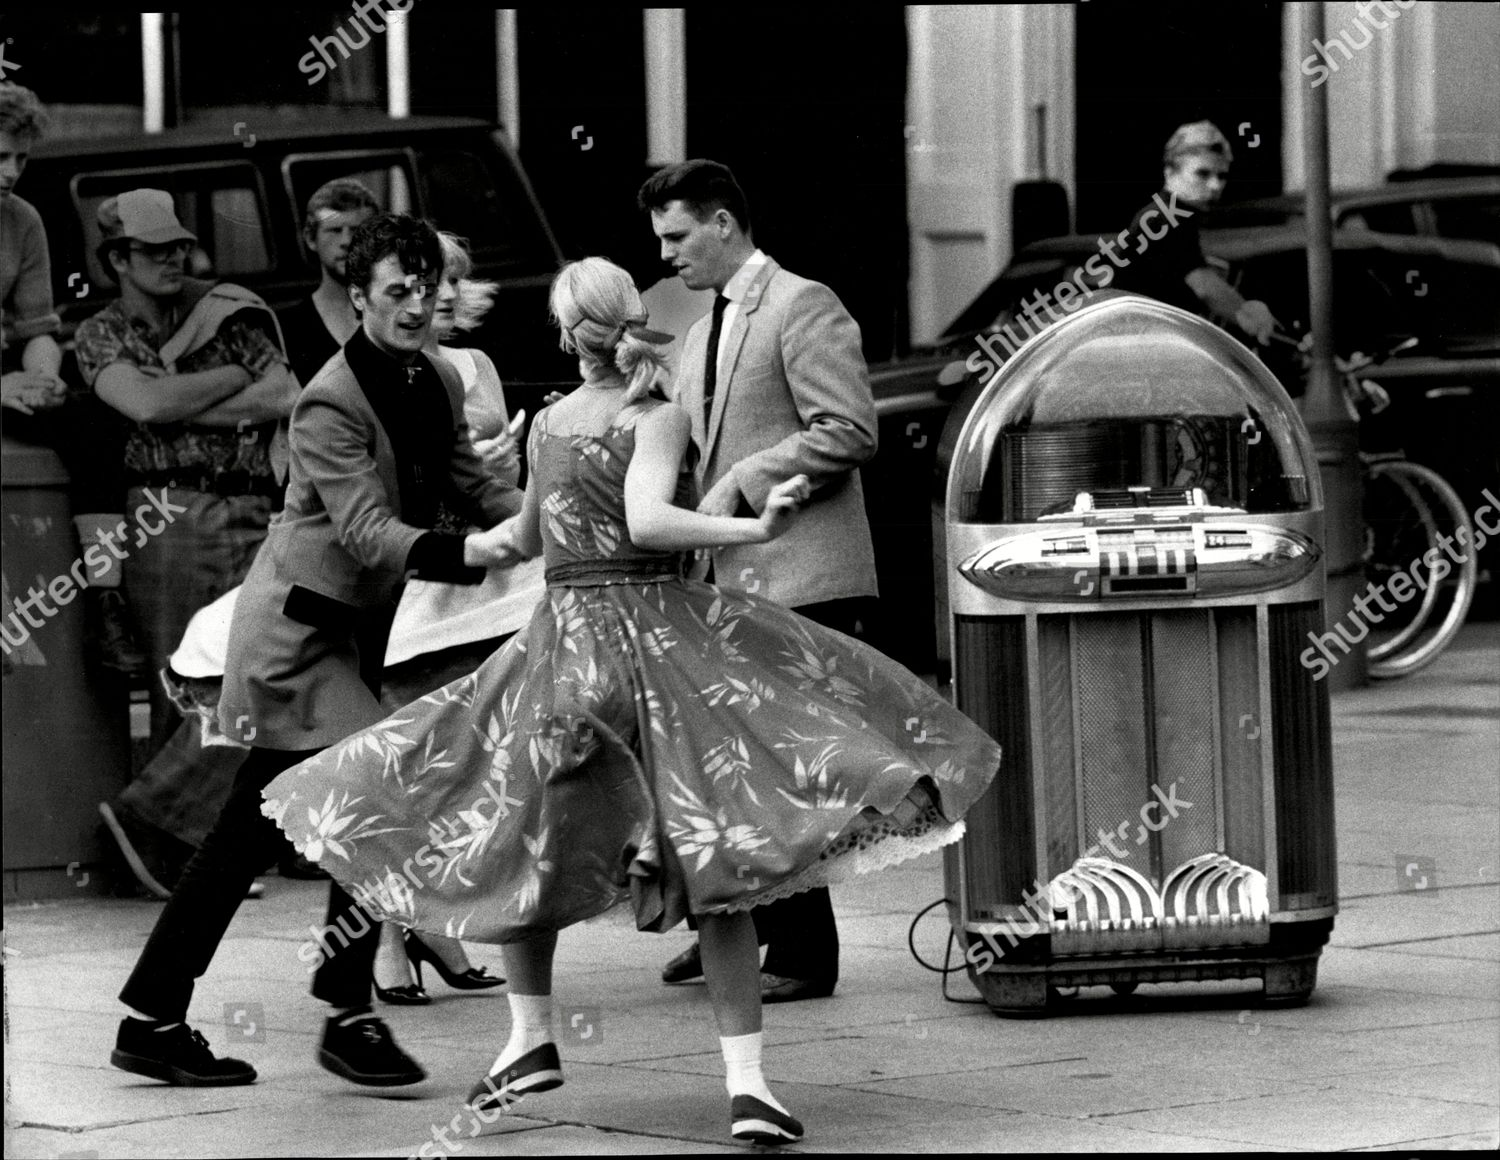 Dancers Dancing swing Dancing Jiving Buddy Holly Editorial